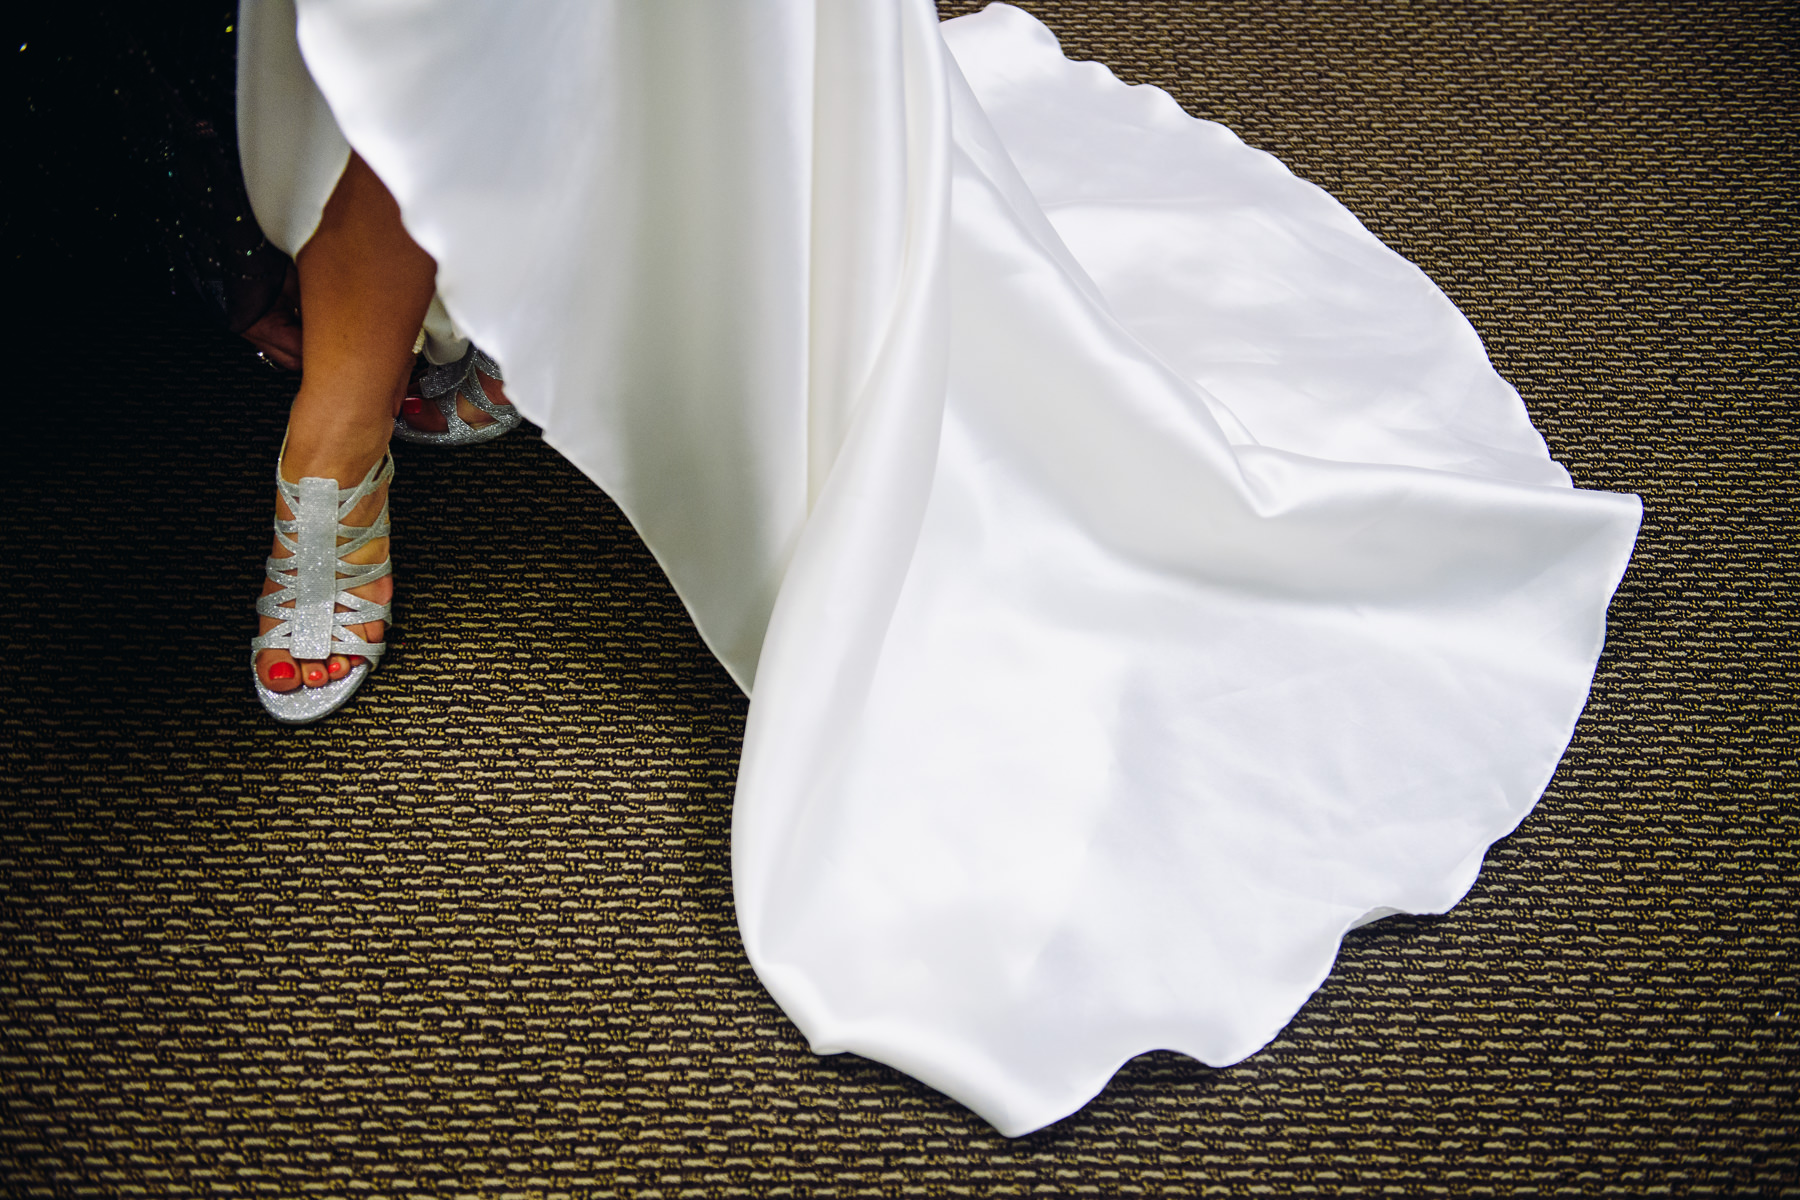 St. Joseph Catholic Church bride shoe photo